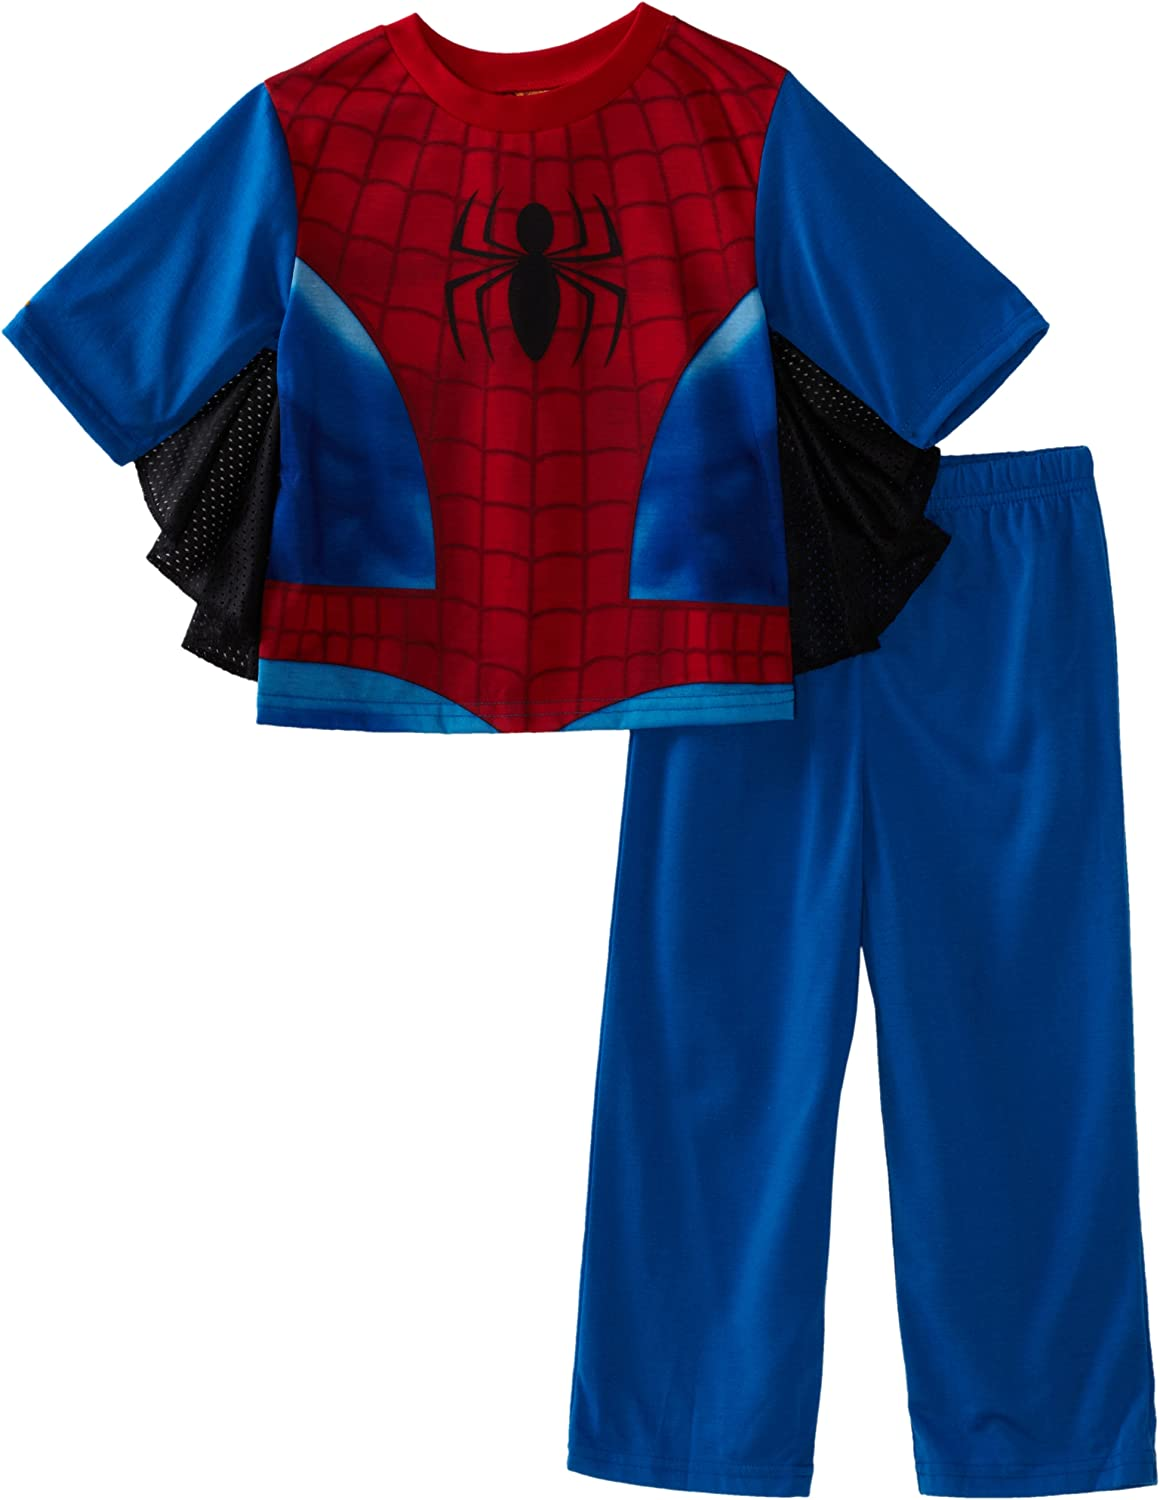 Marvel Spiderman Little /& Big Boys 2 Piece Top /& Shorts Pajama Sleepwear Set